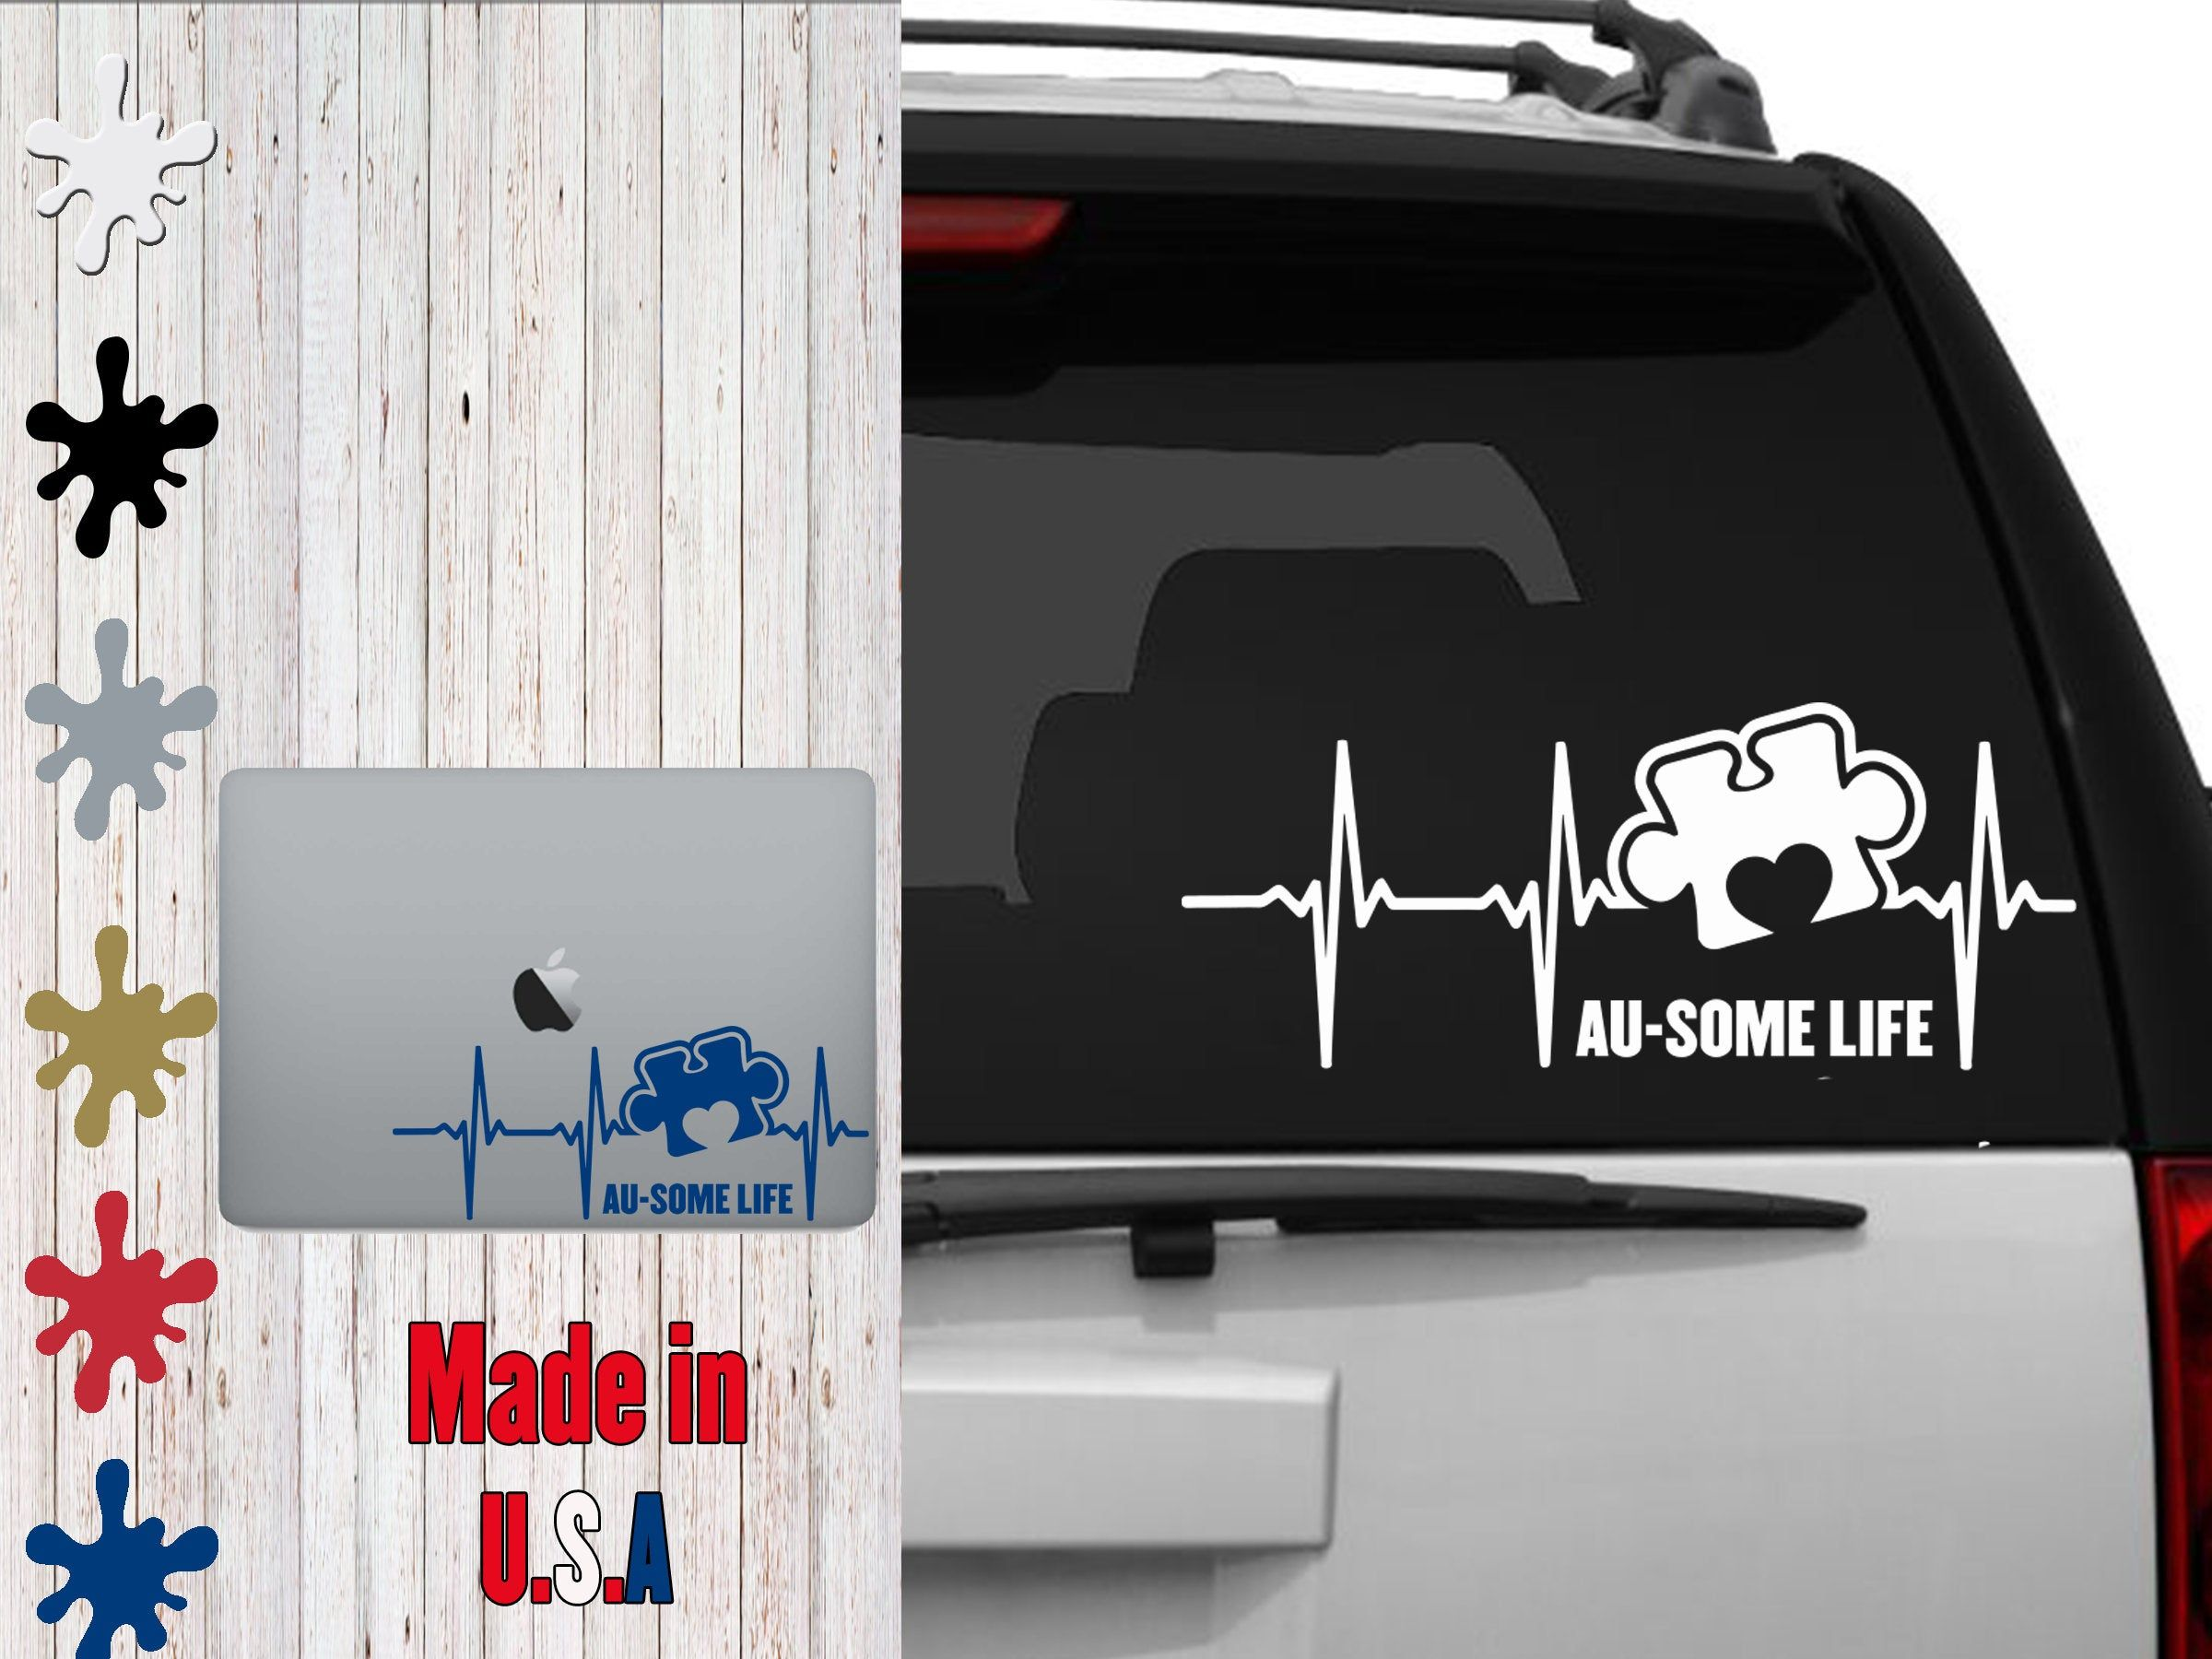 Au Some Life 8 1 2 Inch Decal Car Decal Laptop Decal In 2020 Laptop Decal Car Decals Car